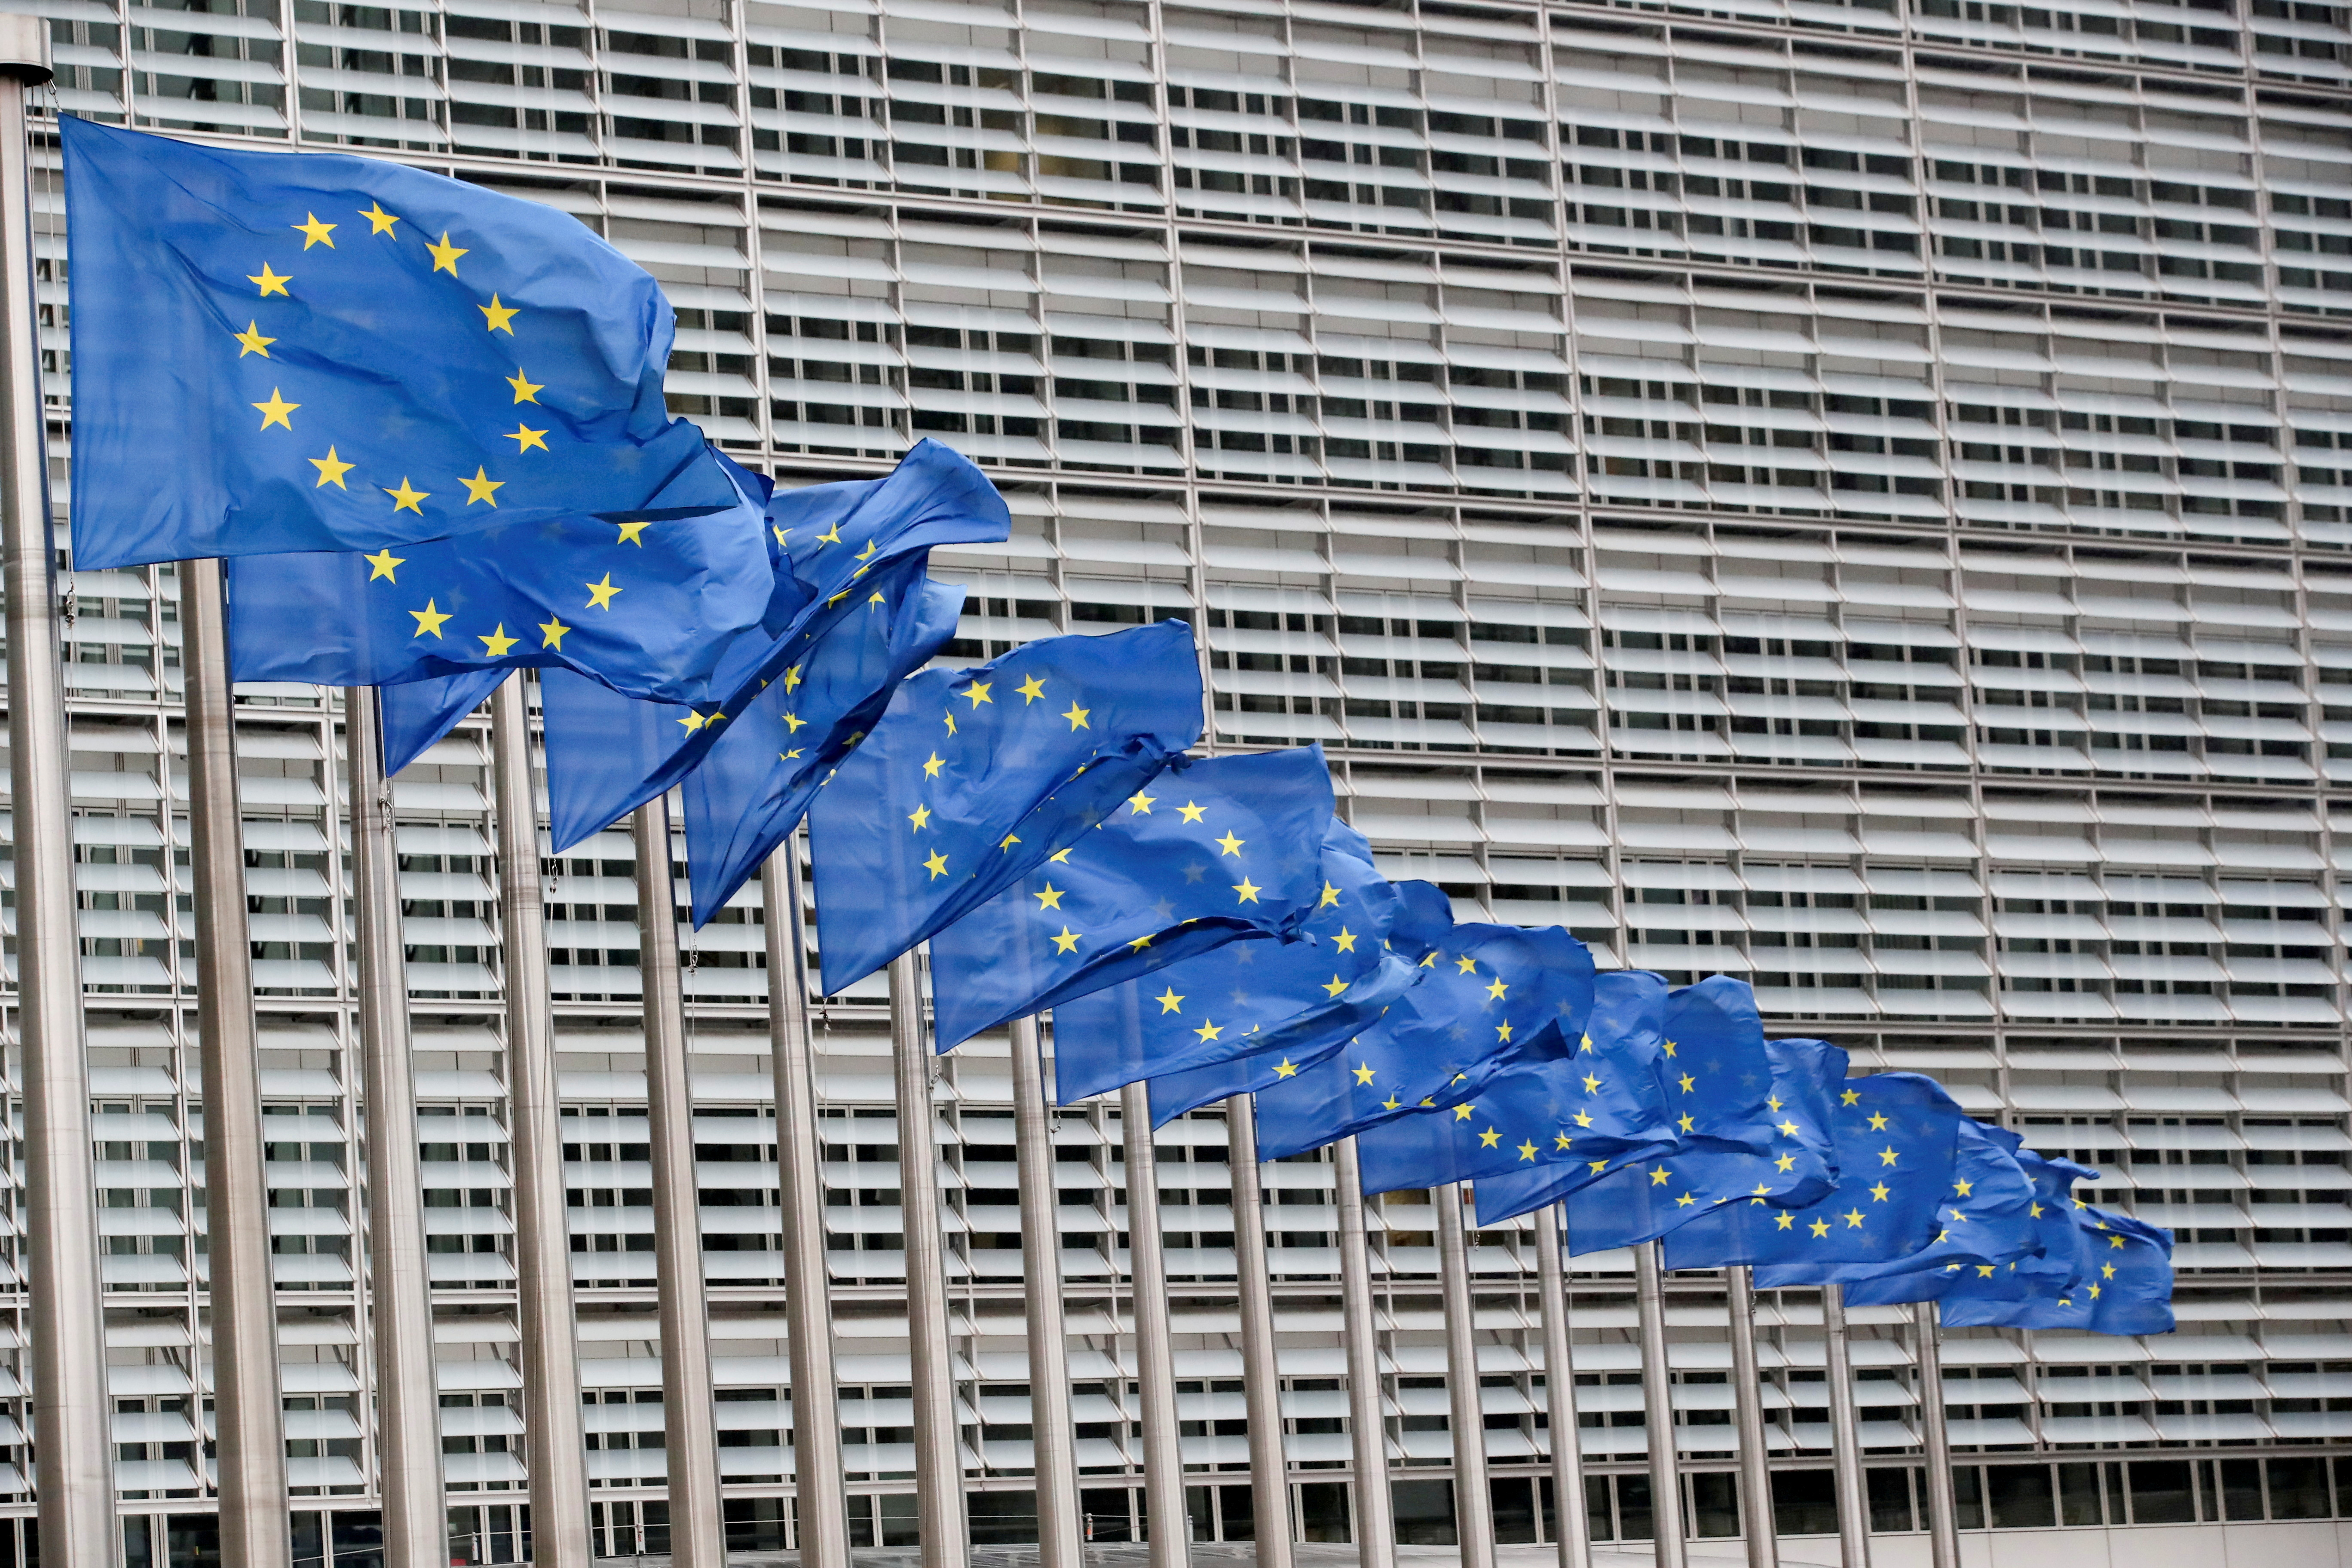 European Union flags flutter outside the EU Commission headquarters in Brussels, Belgium, July 14, 2021. REUTERS/Yves Herman/File Photo